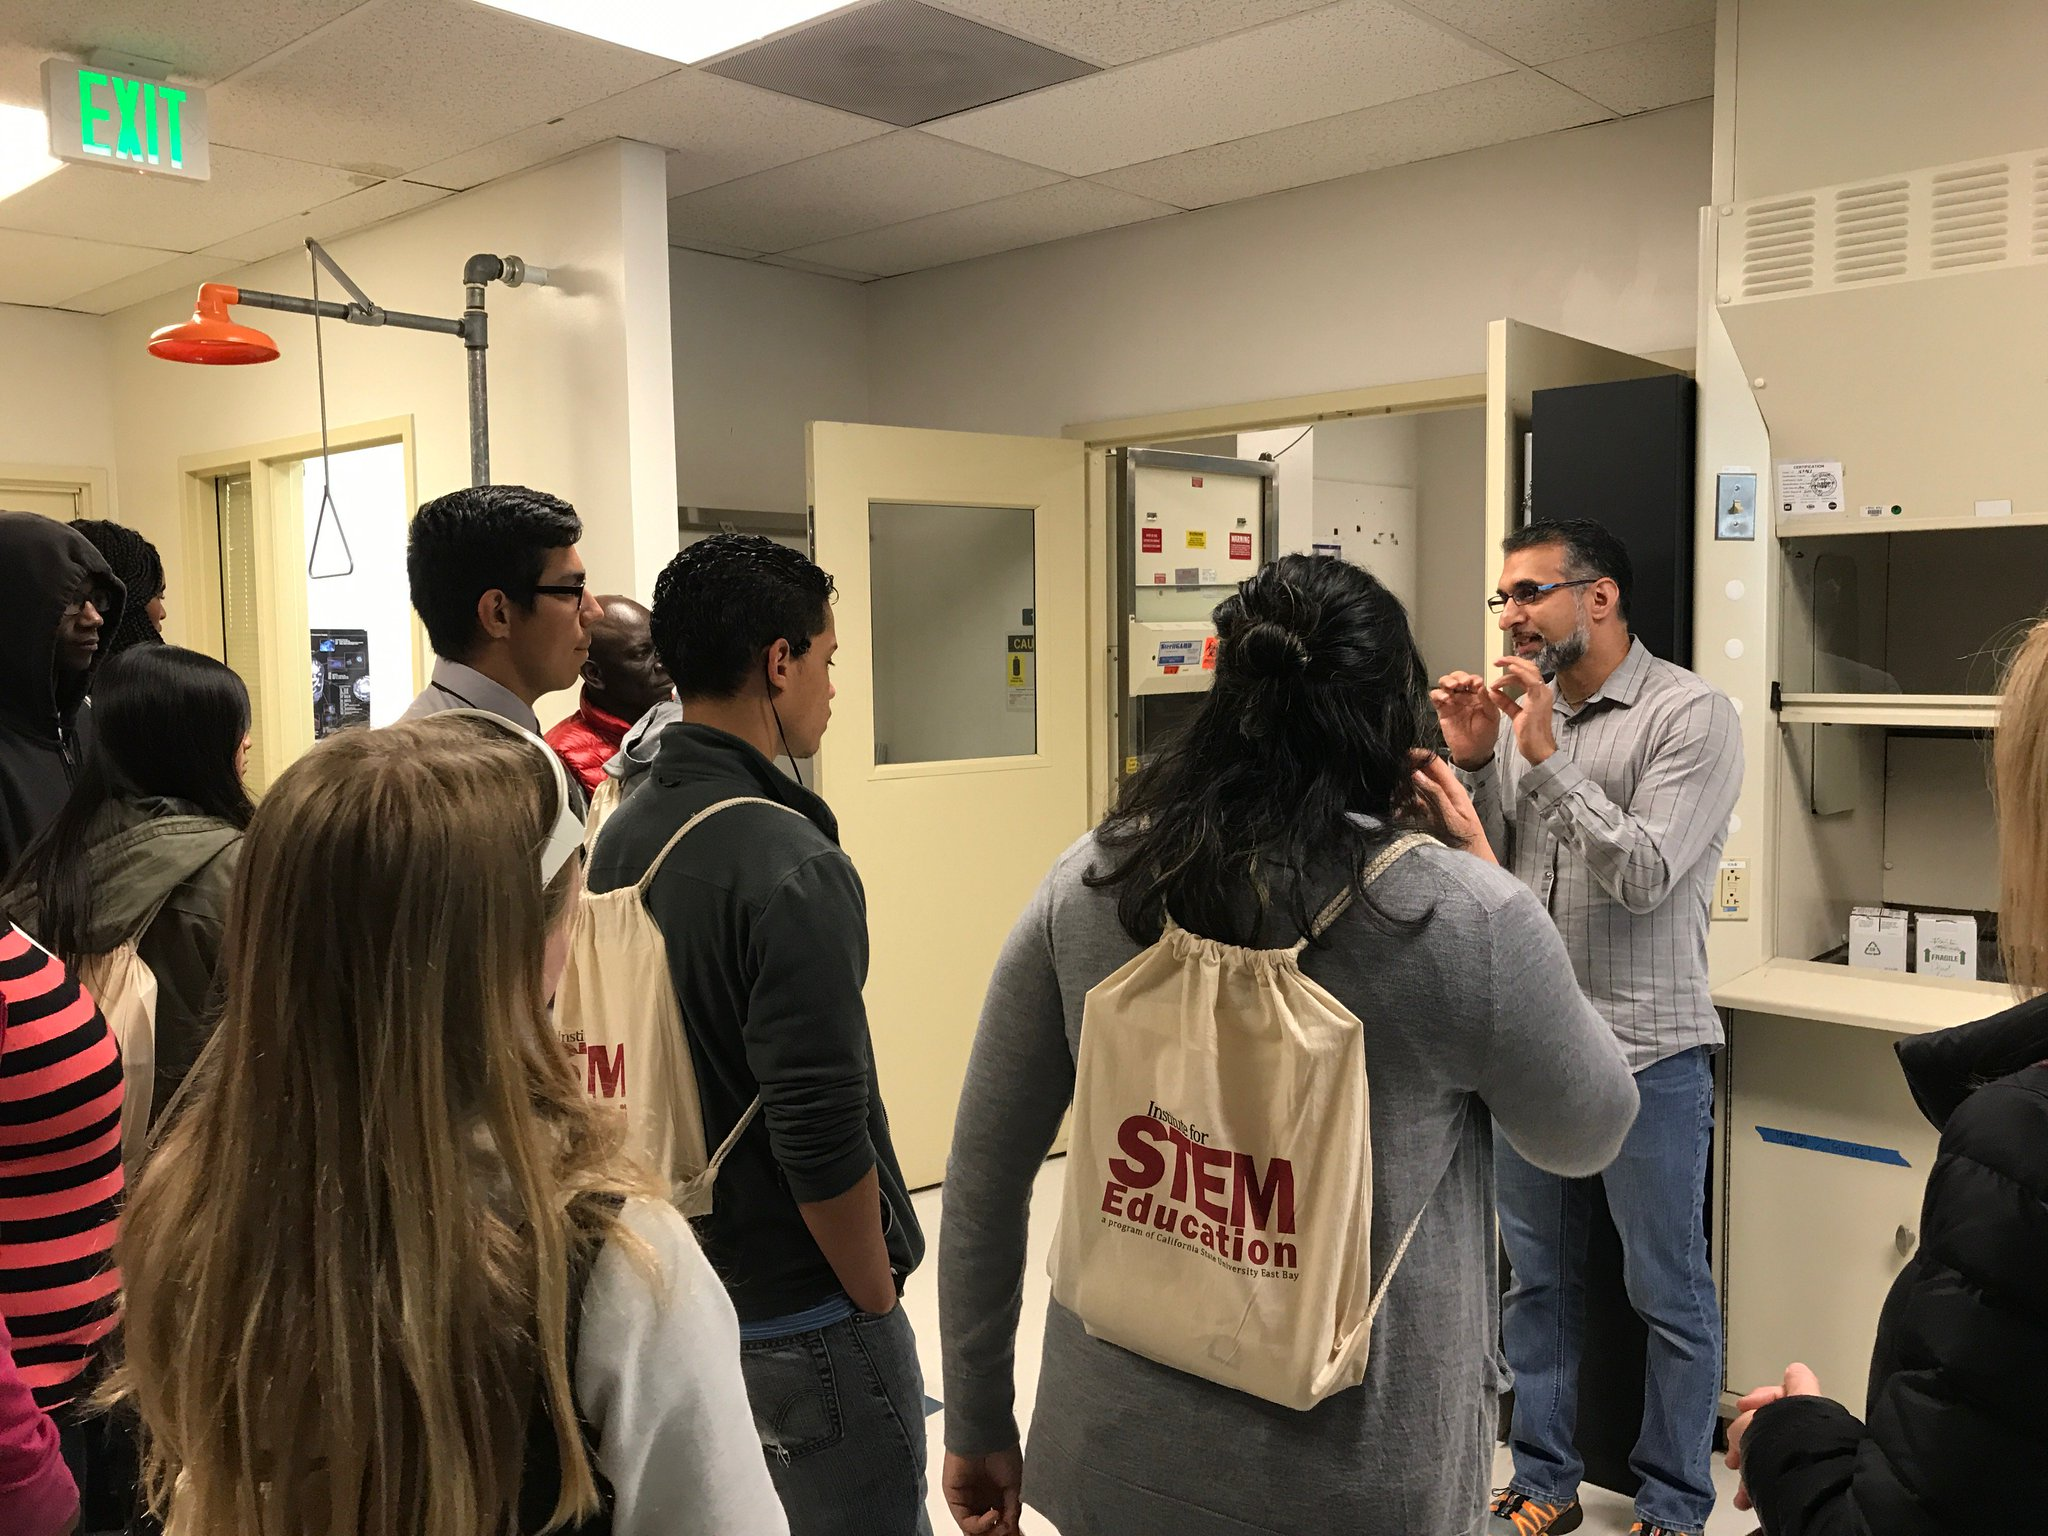 Advanced Microscopy Facility @LBNLBioSci a great place for #STEMEducation. #BioMBIB #BioSciNextGen  https://t.co/CUDA4HbQ7s https://t.co/Wd7iaJIIWl